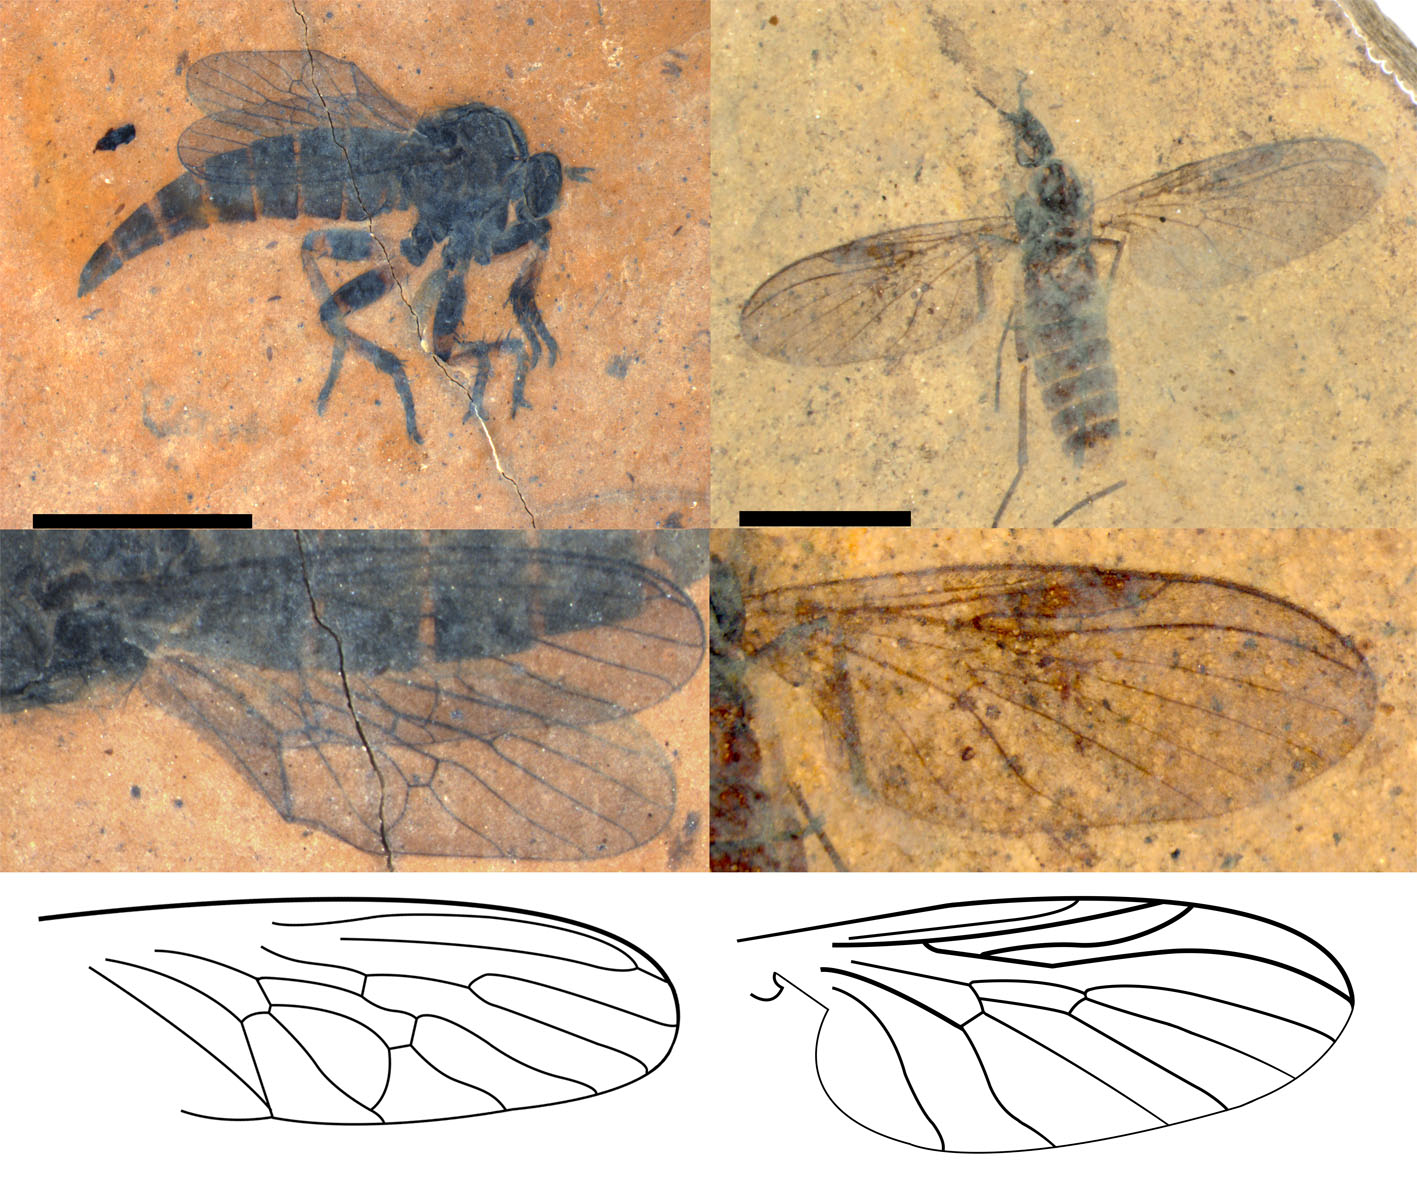 Smithsonian Scientists Describe New Fossil Fly Species – Smithsonian Libraries / Unbound